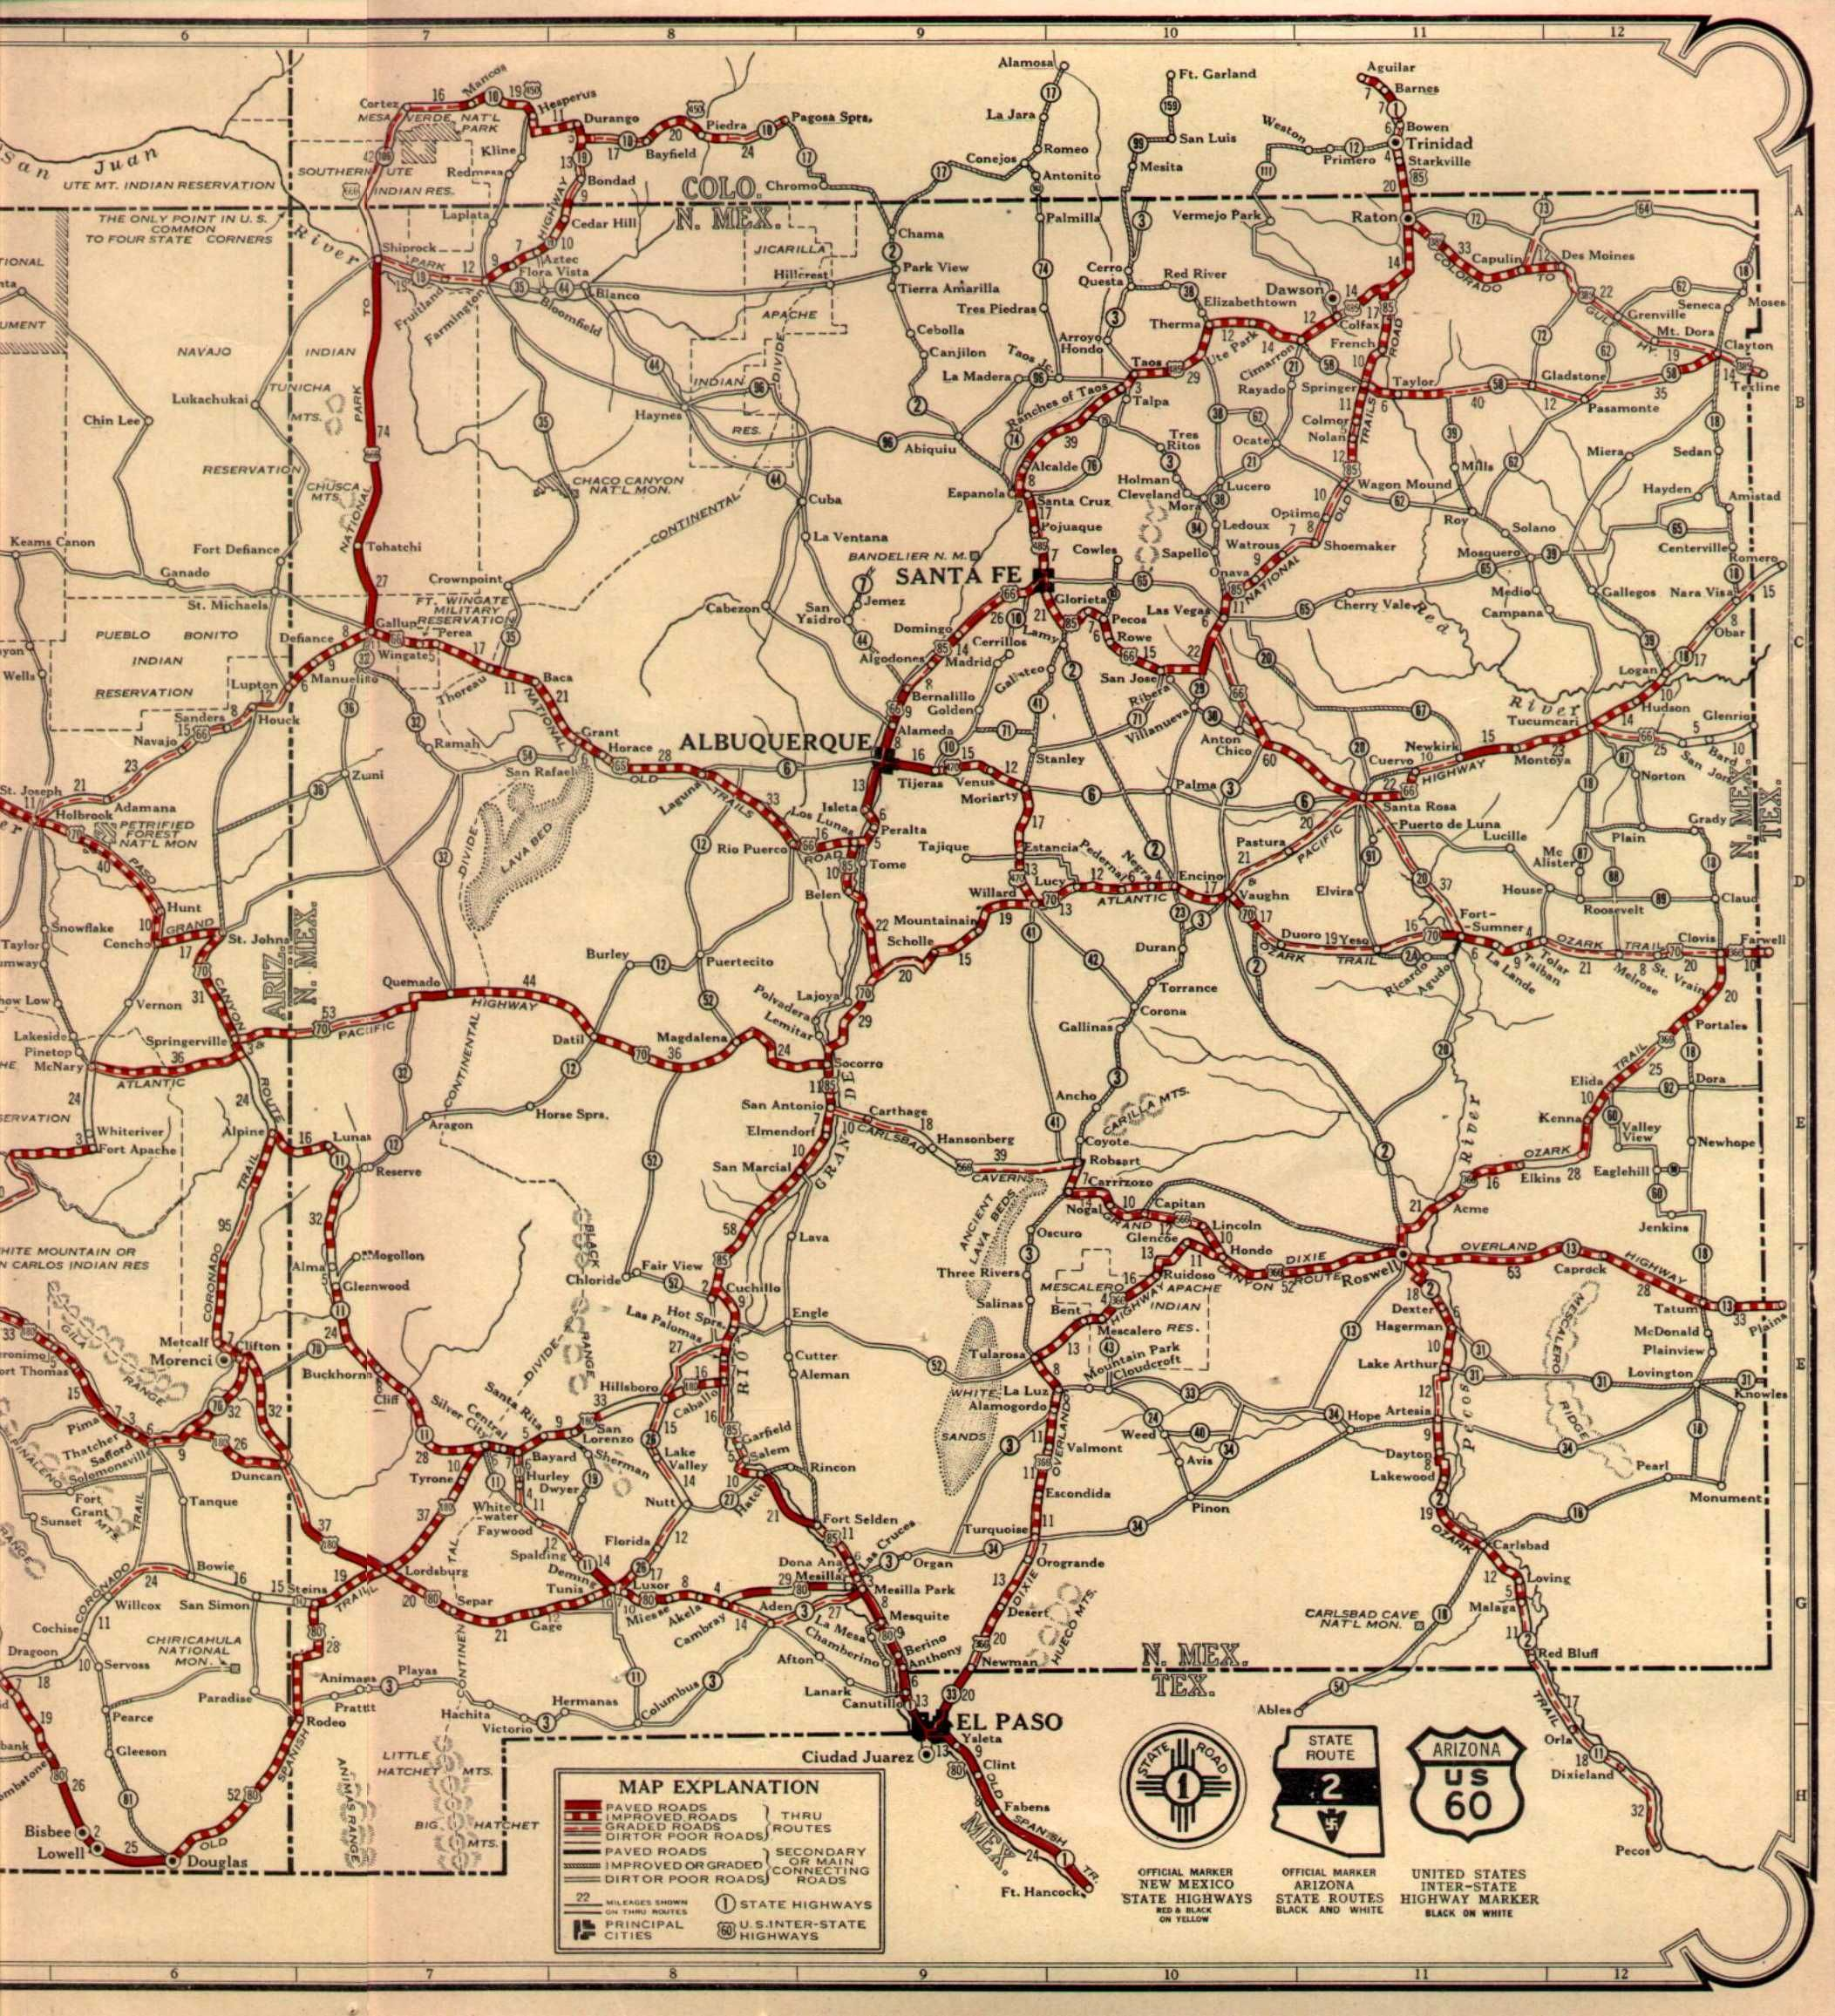 Route On AZNM Map Maps Pinterest Route Road - 1934 us highways map midwest